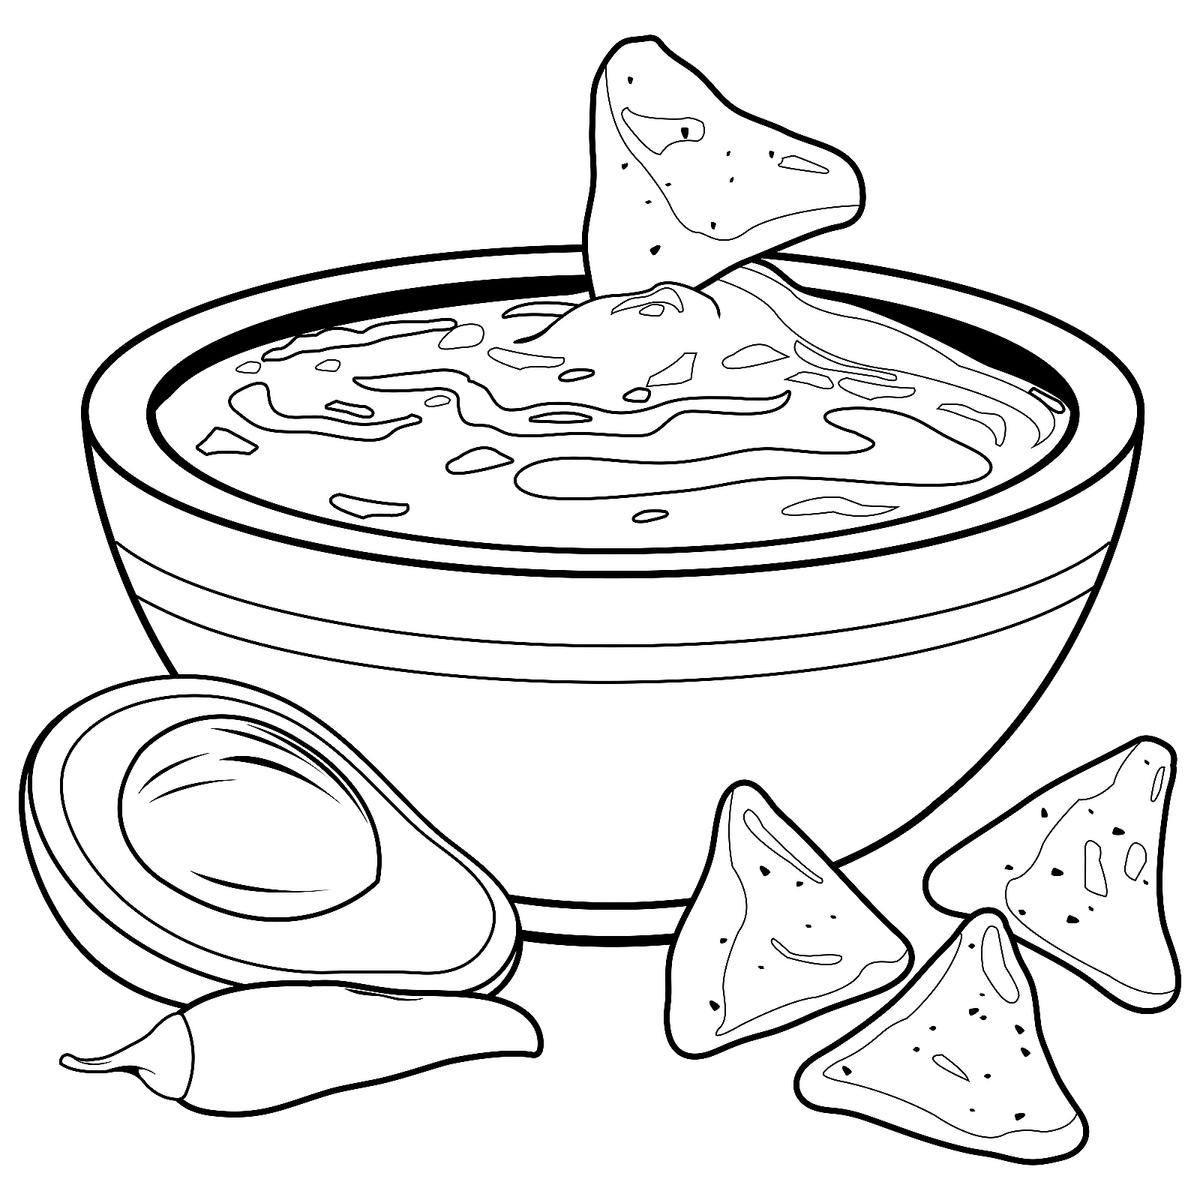 coloring food pages healthy food coloring pages clipart panda free clipart pages coloring food